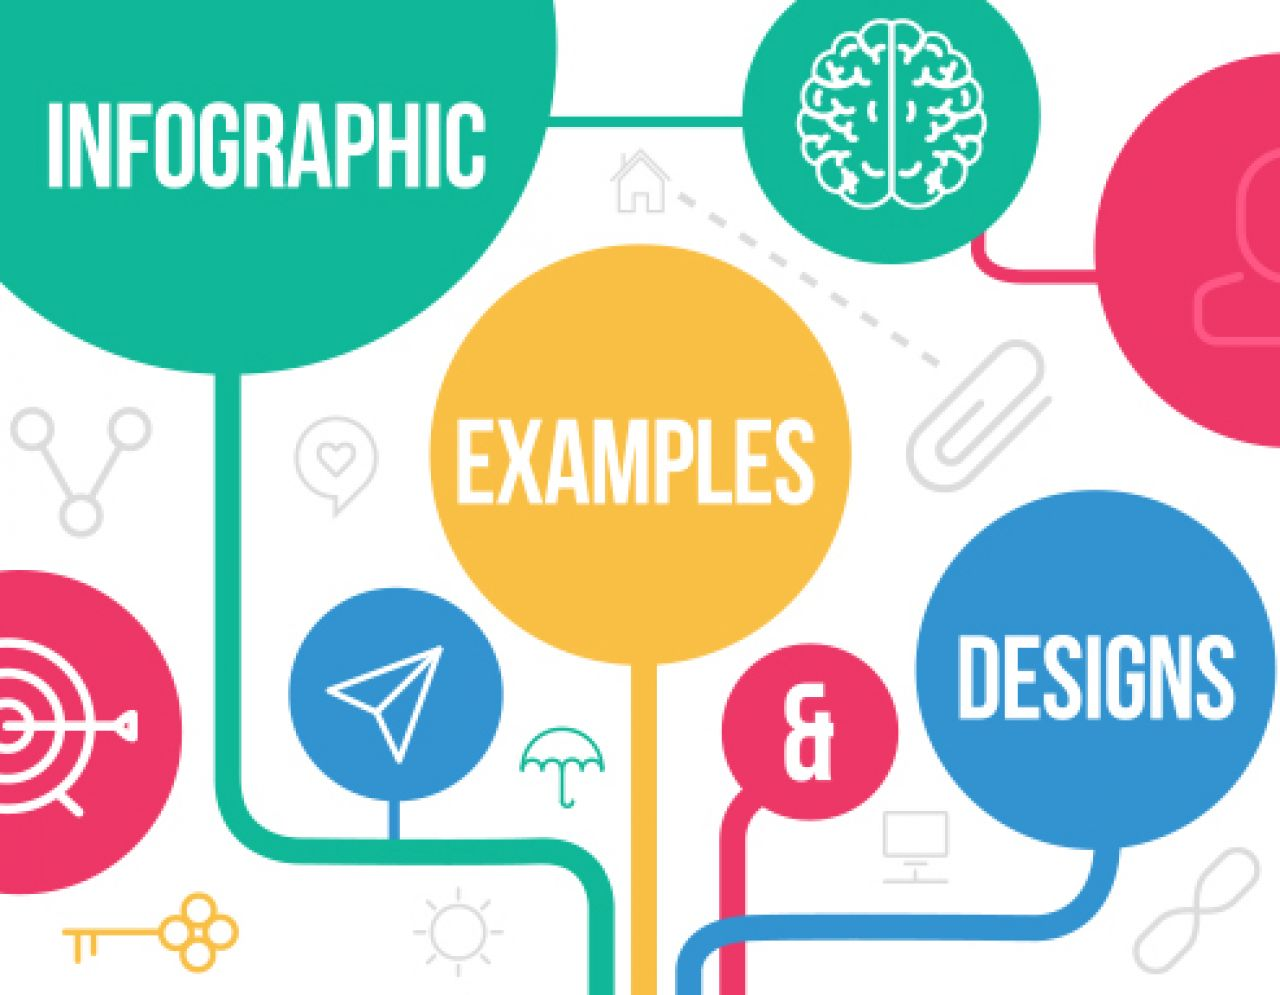 Best infographic makers